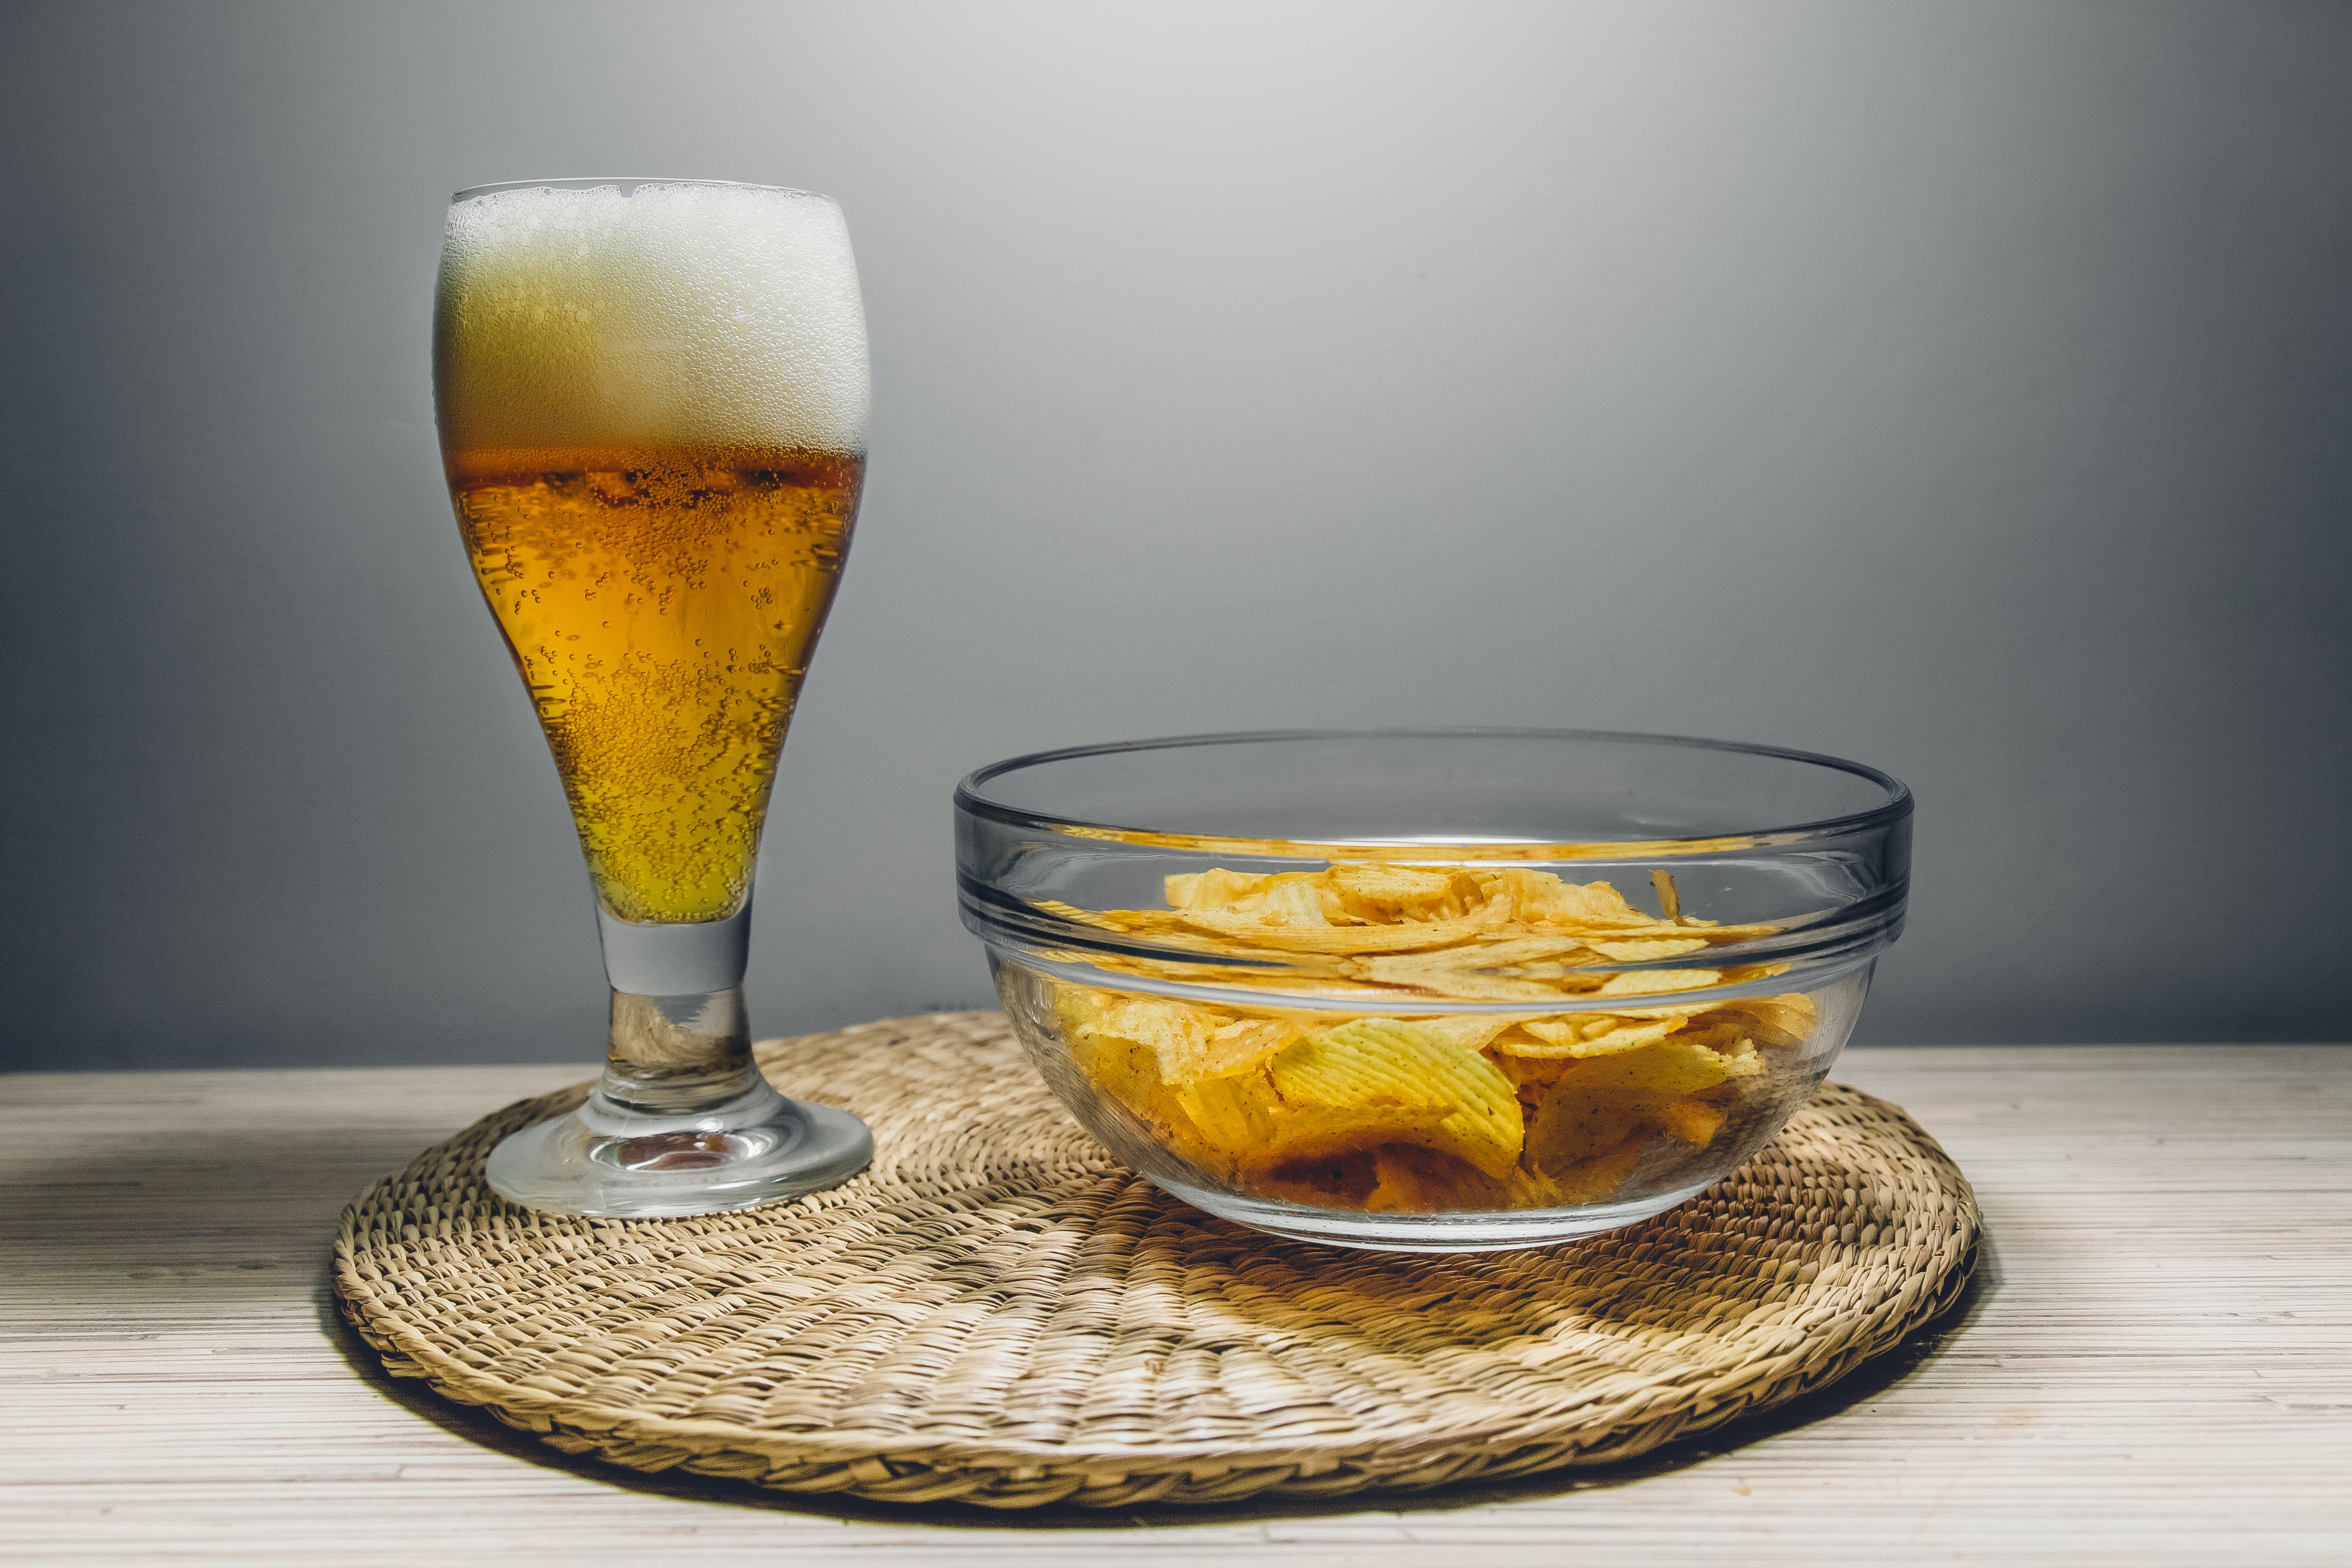 Clear Glass Bowl Filled With Chips